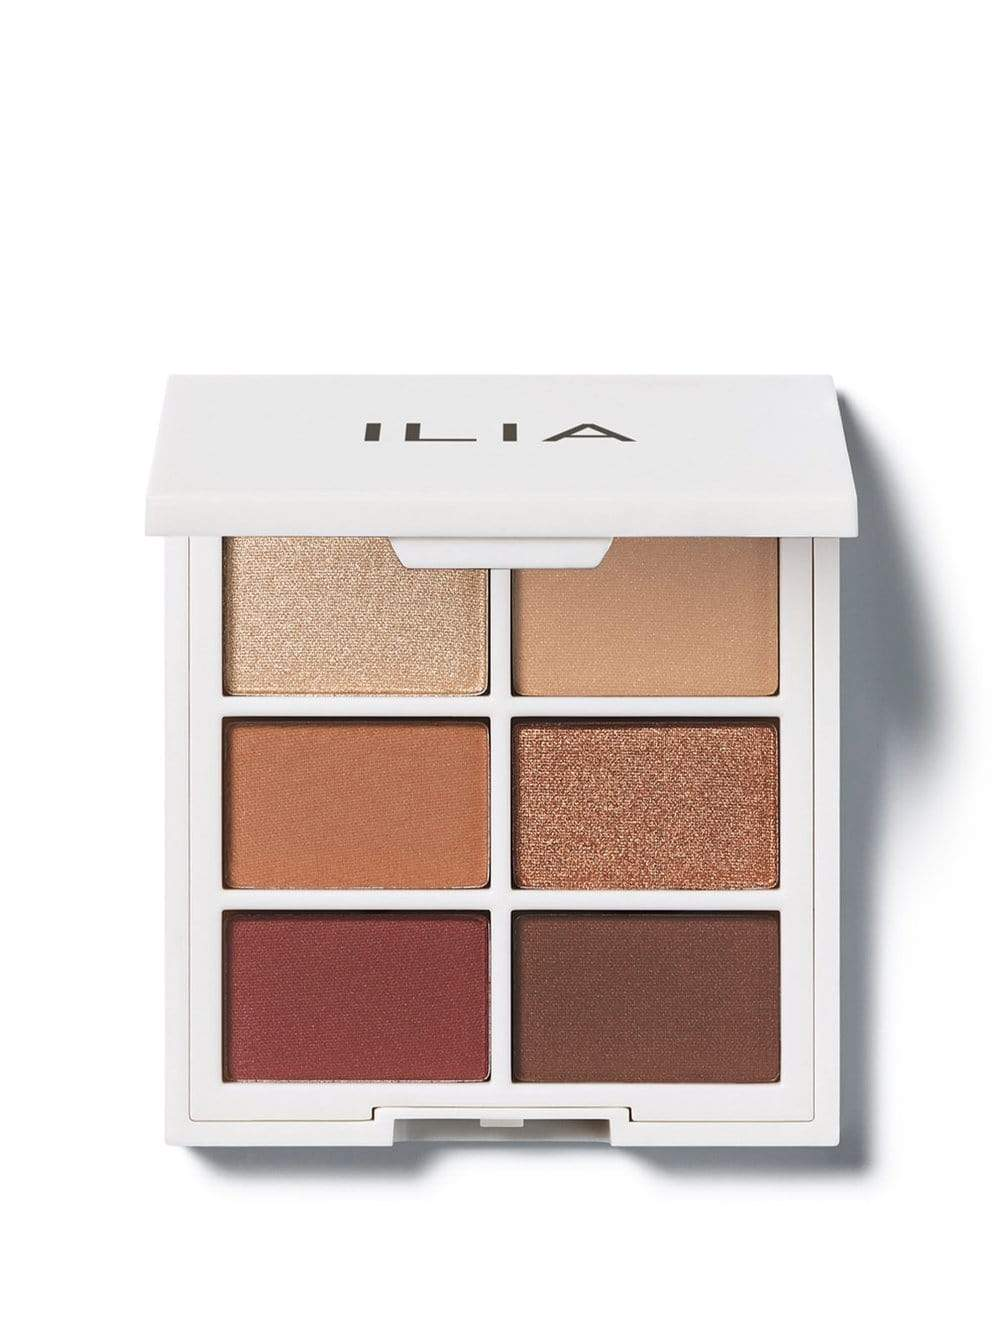 The Necessary Eyeshadow Palette - Warm Nude - Cheveux Heureux